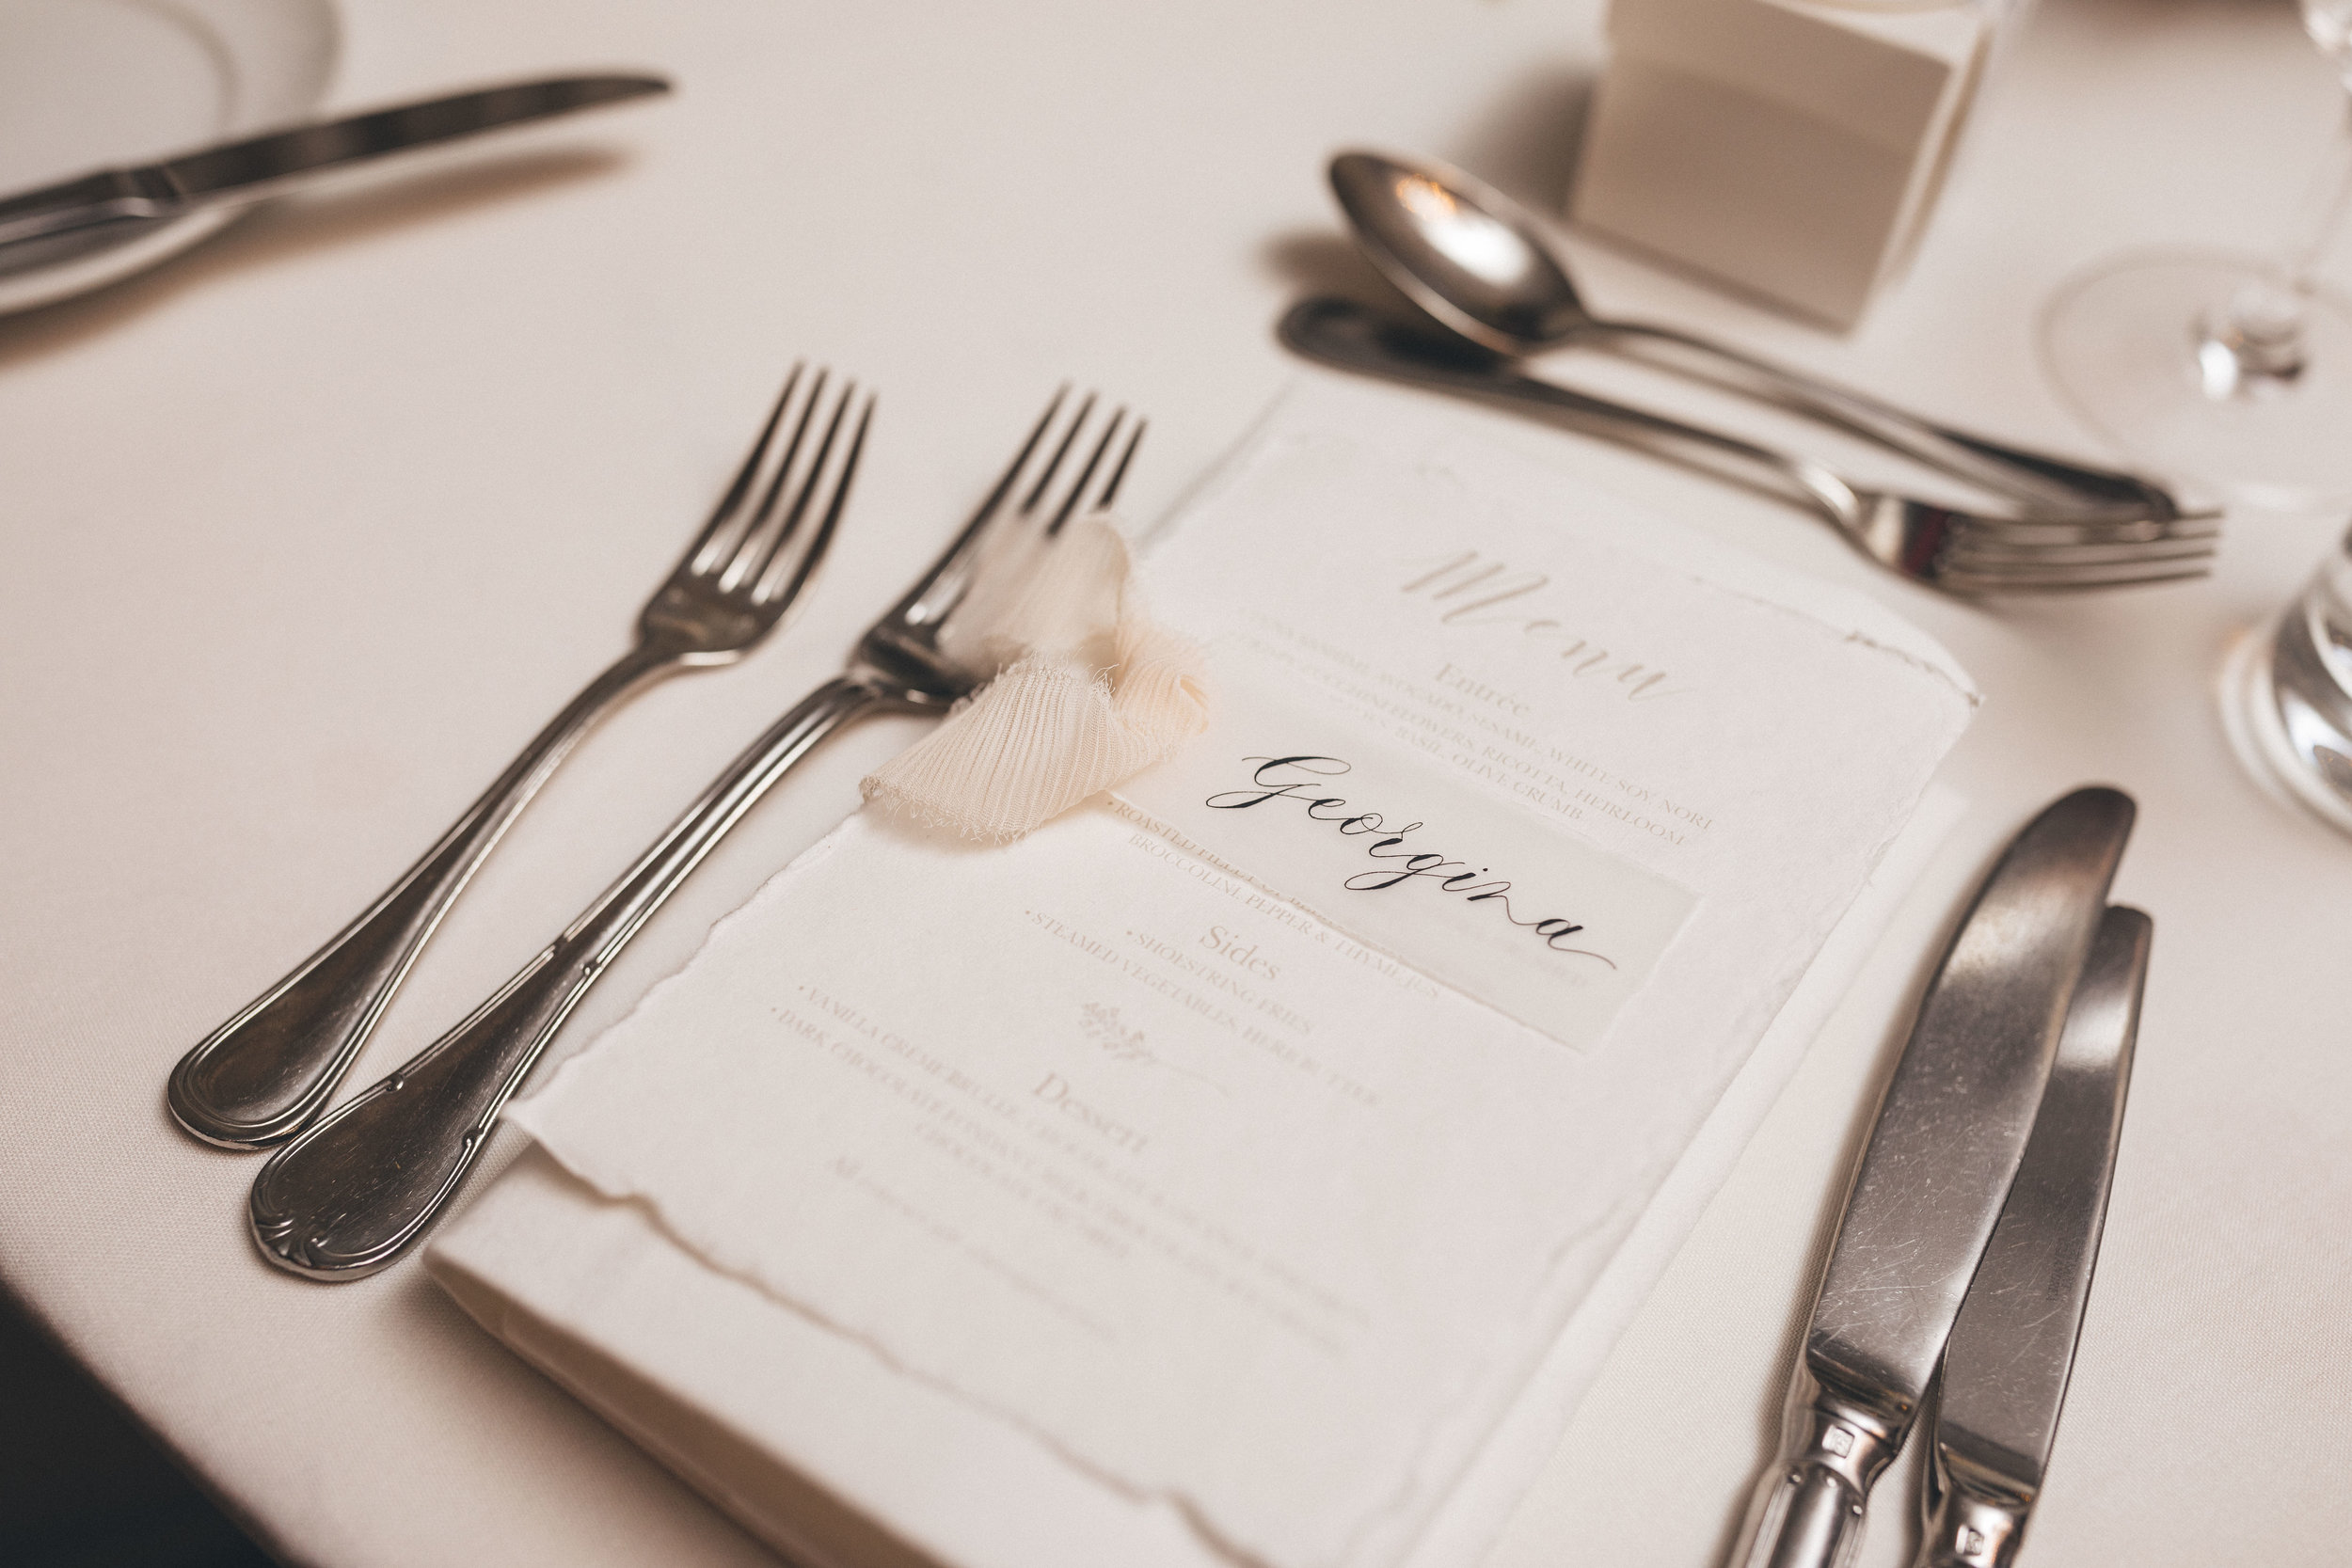 Menus & name place cards - To further create a cohesive look throughout the reception, having custom made name place cards and/or menus can create a personalised feel for each guest.